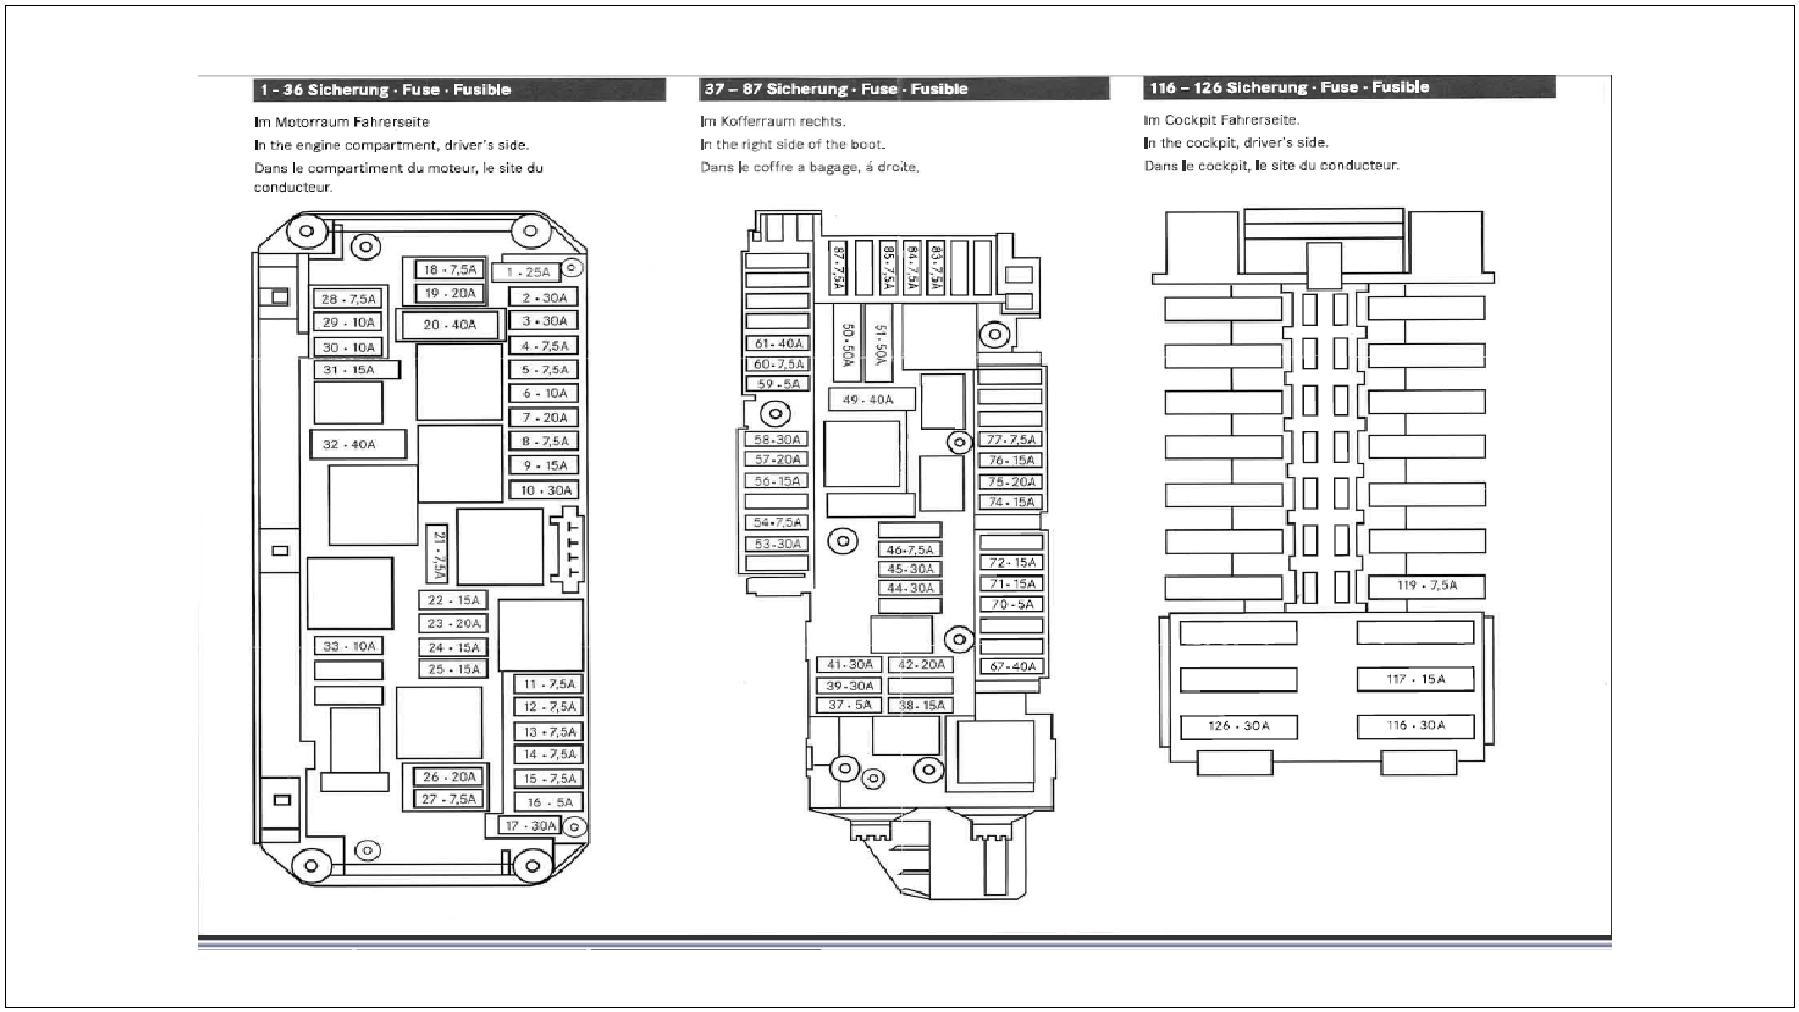 2007 Lincoln Mkz Fuse Box Diagram 2007 Free Engine Image For User